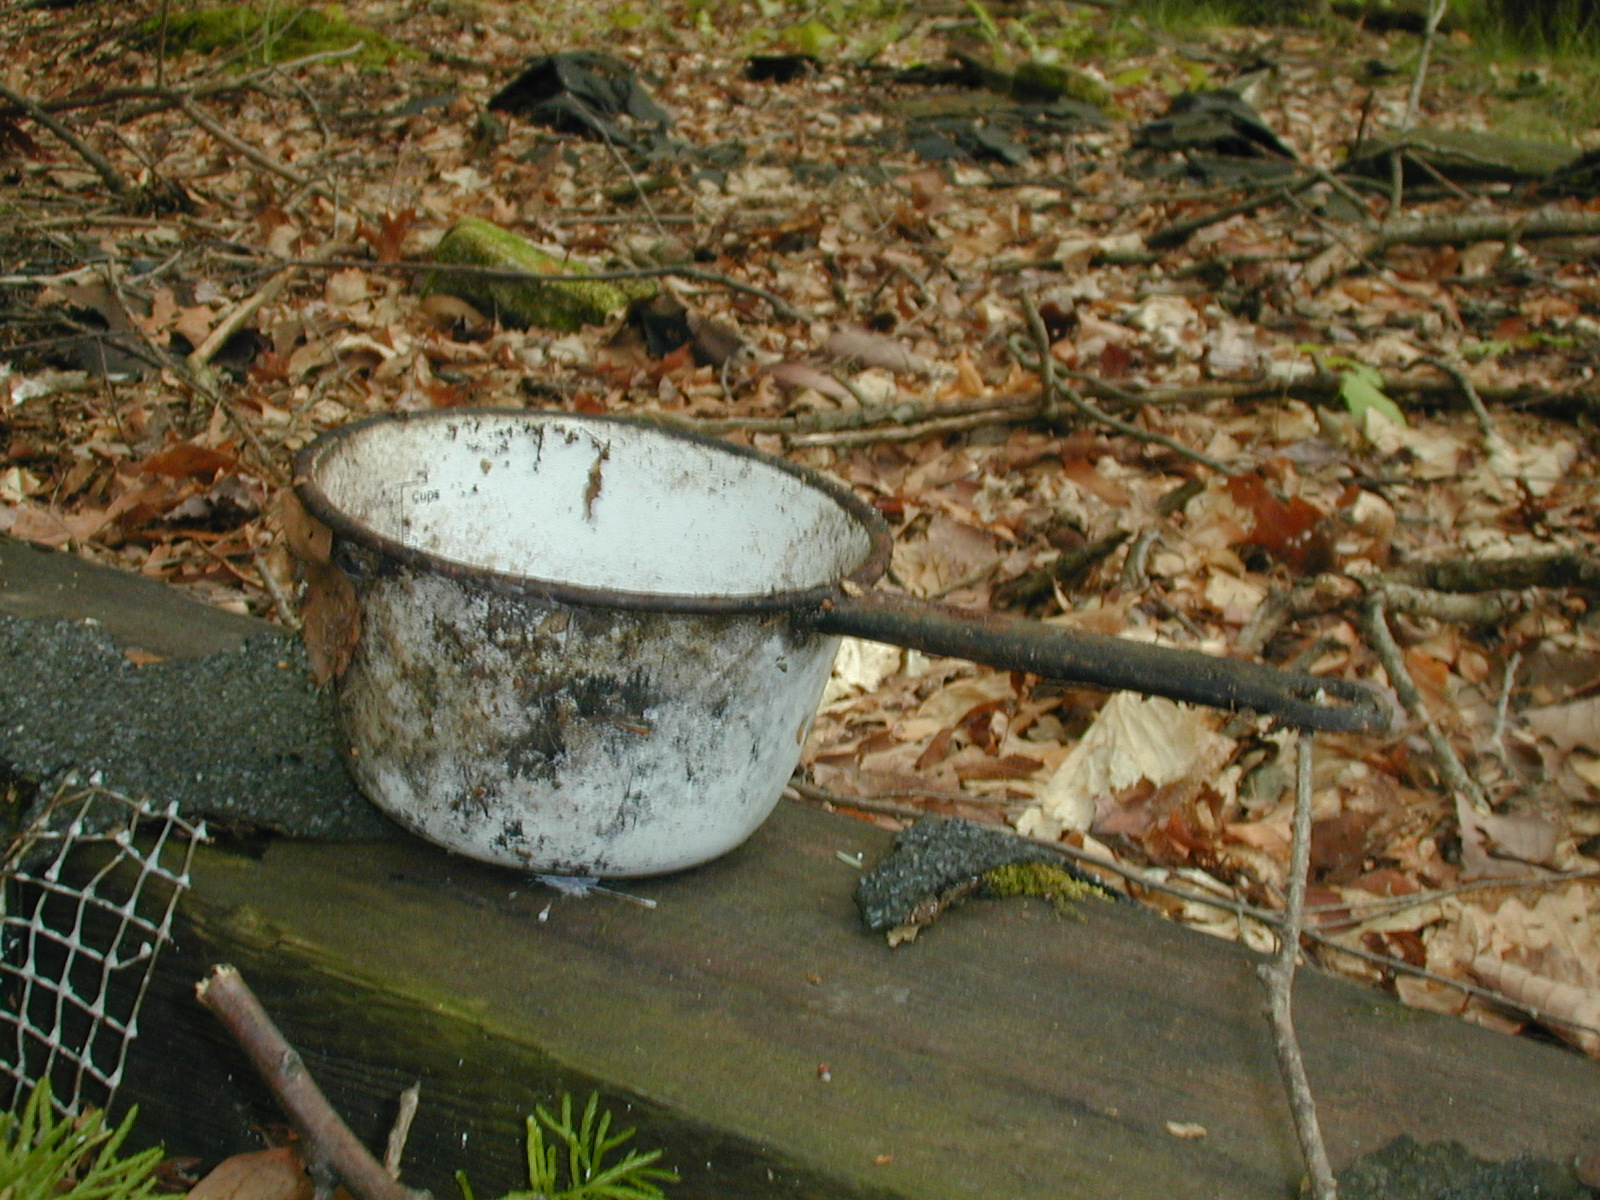 A white metal measuring cup or pot